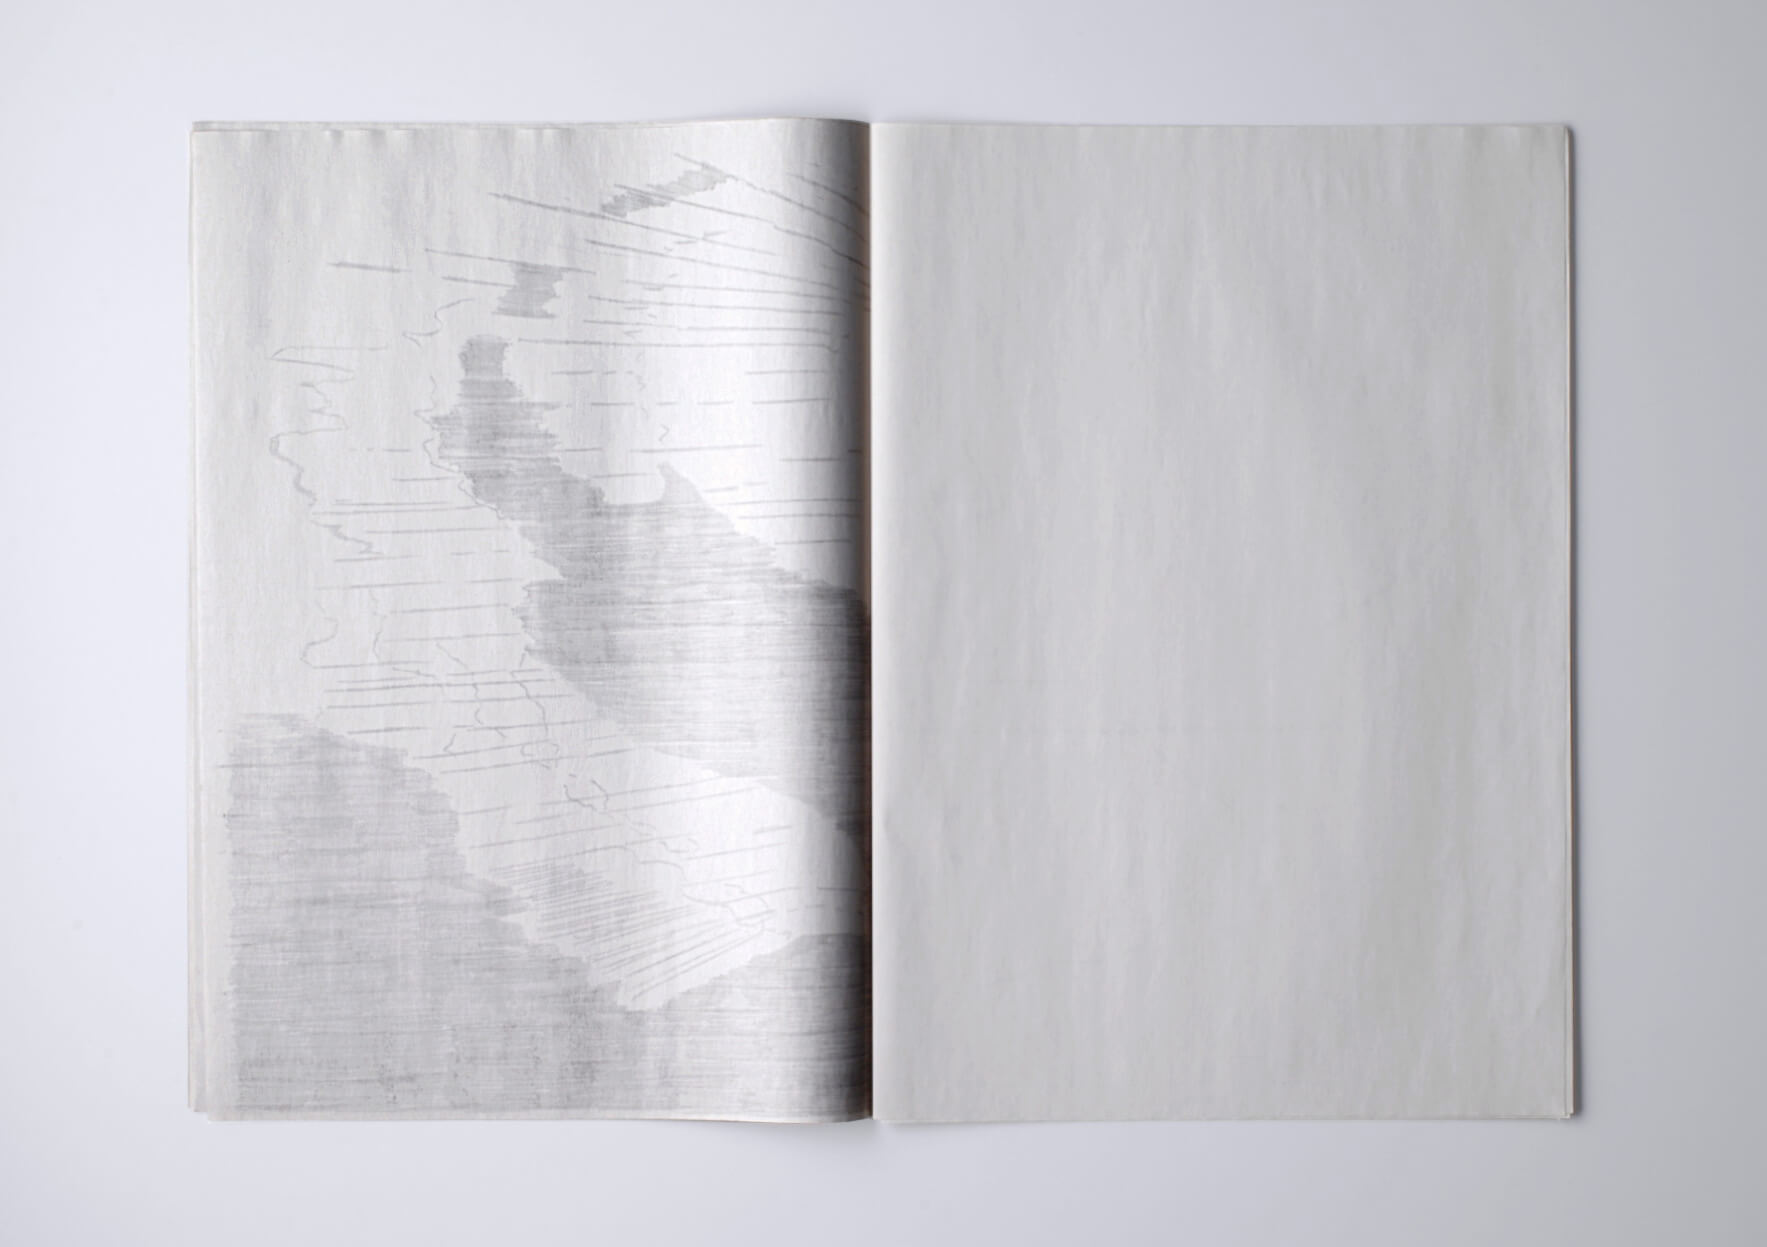 Patricia Dauder Insulana, 2019 Graphit on newspaper paper 30, 5 x 43 cm, 24 p. Ed. 5 + 2AP | Mother | ProjecteSD